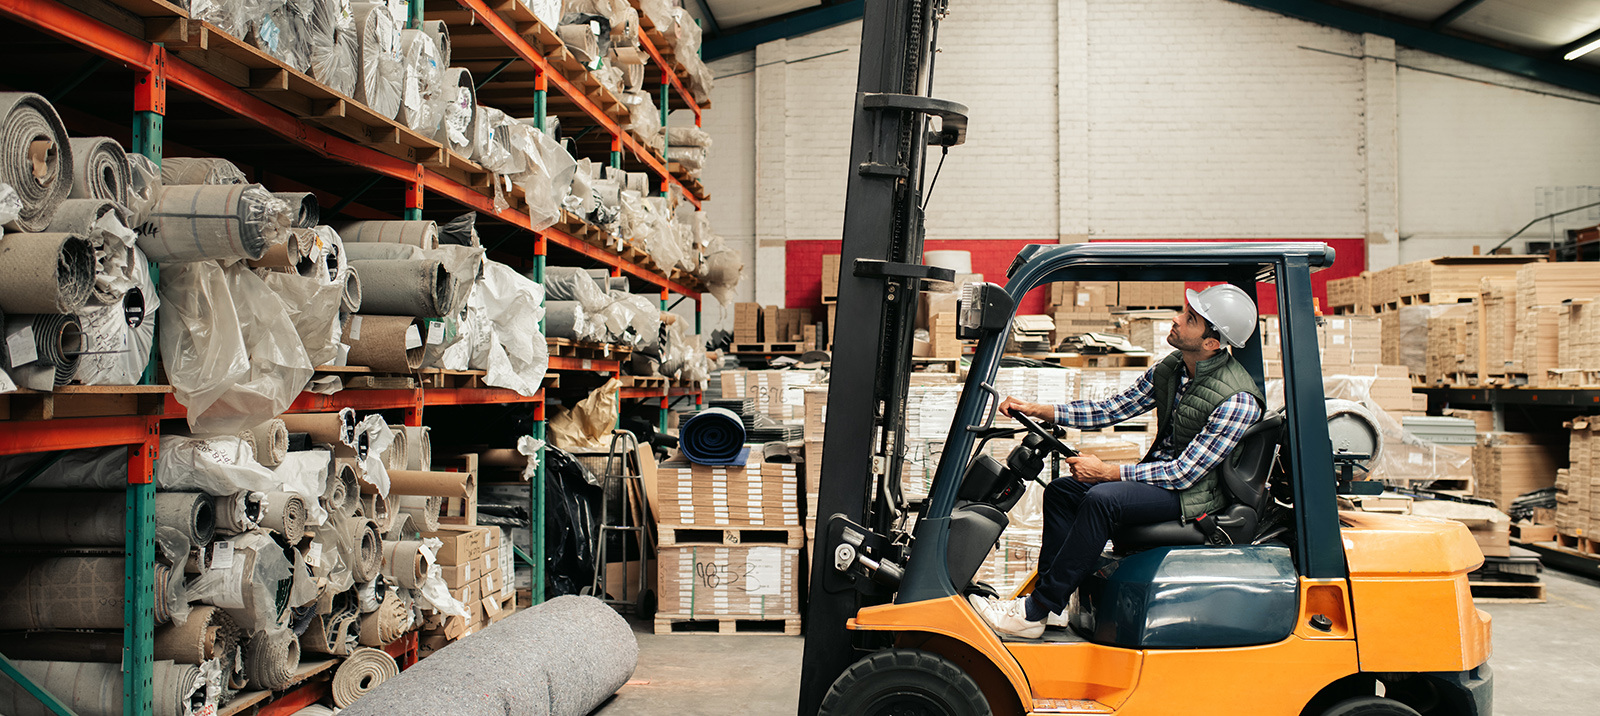 The Benefits of a Used vs New Forklift